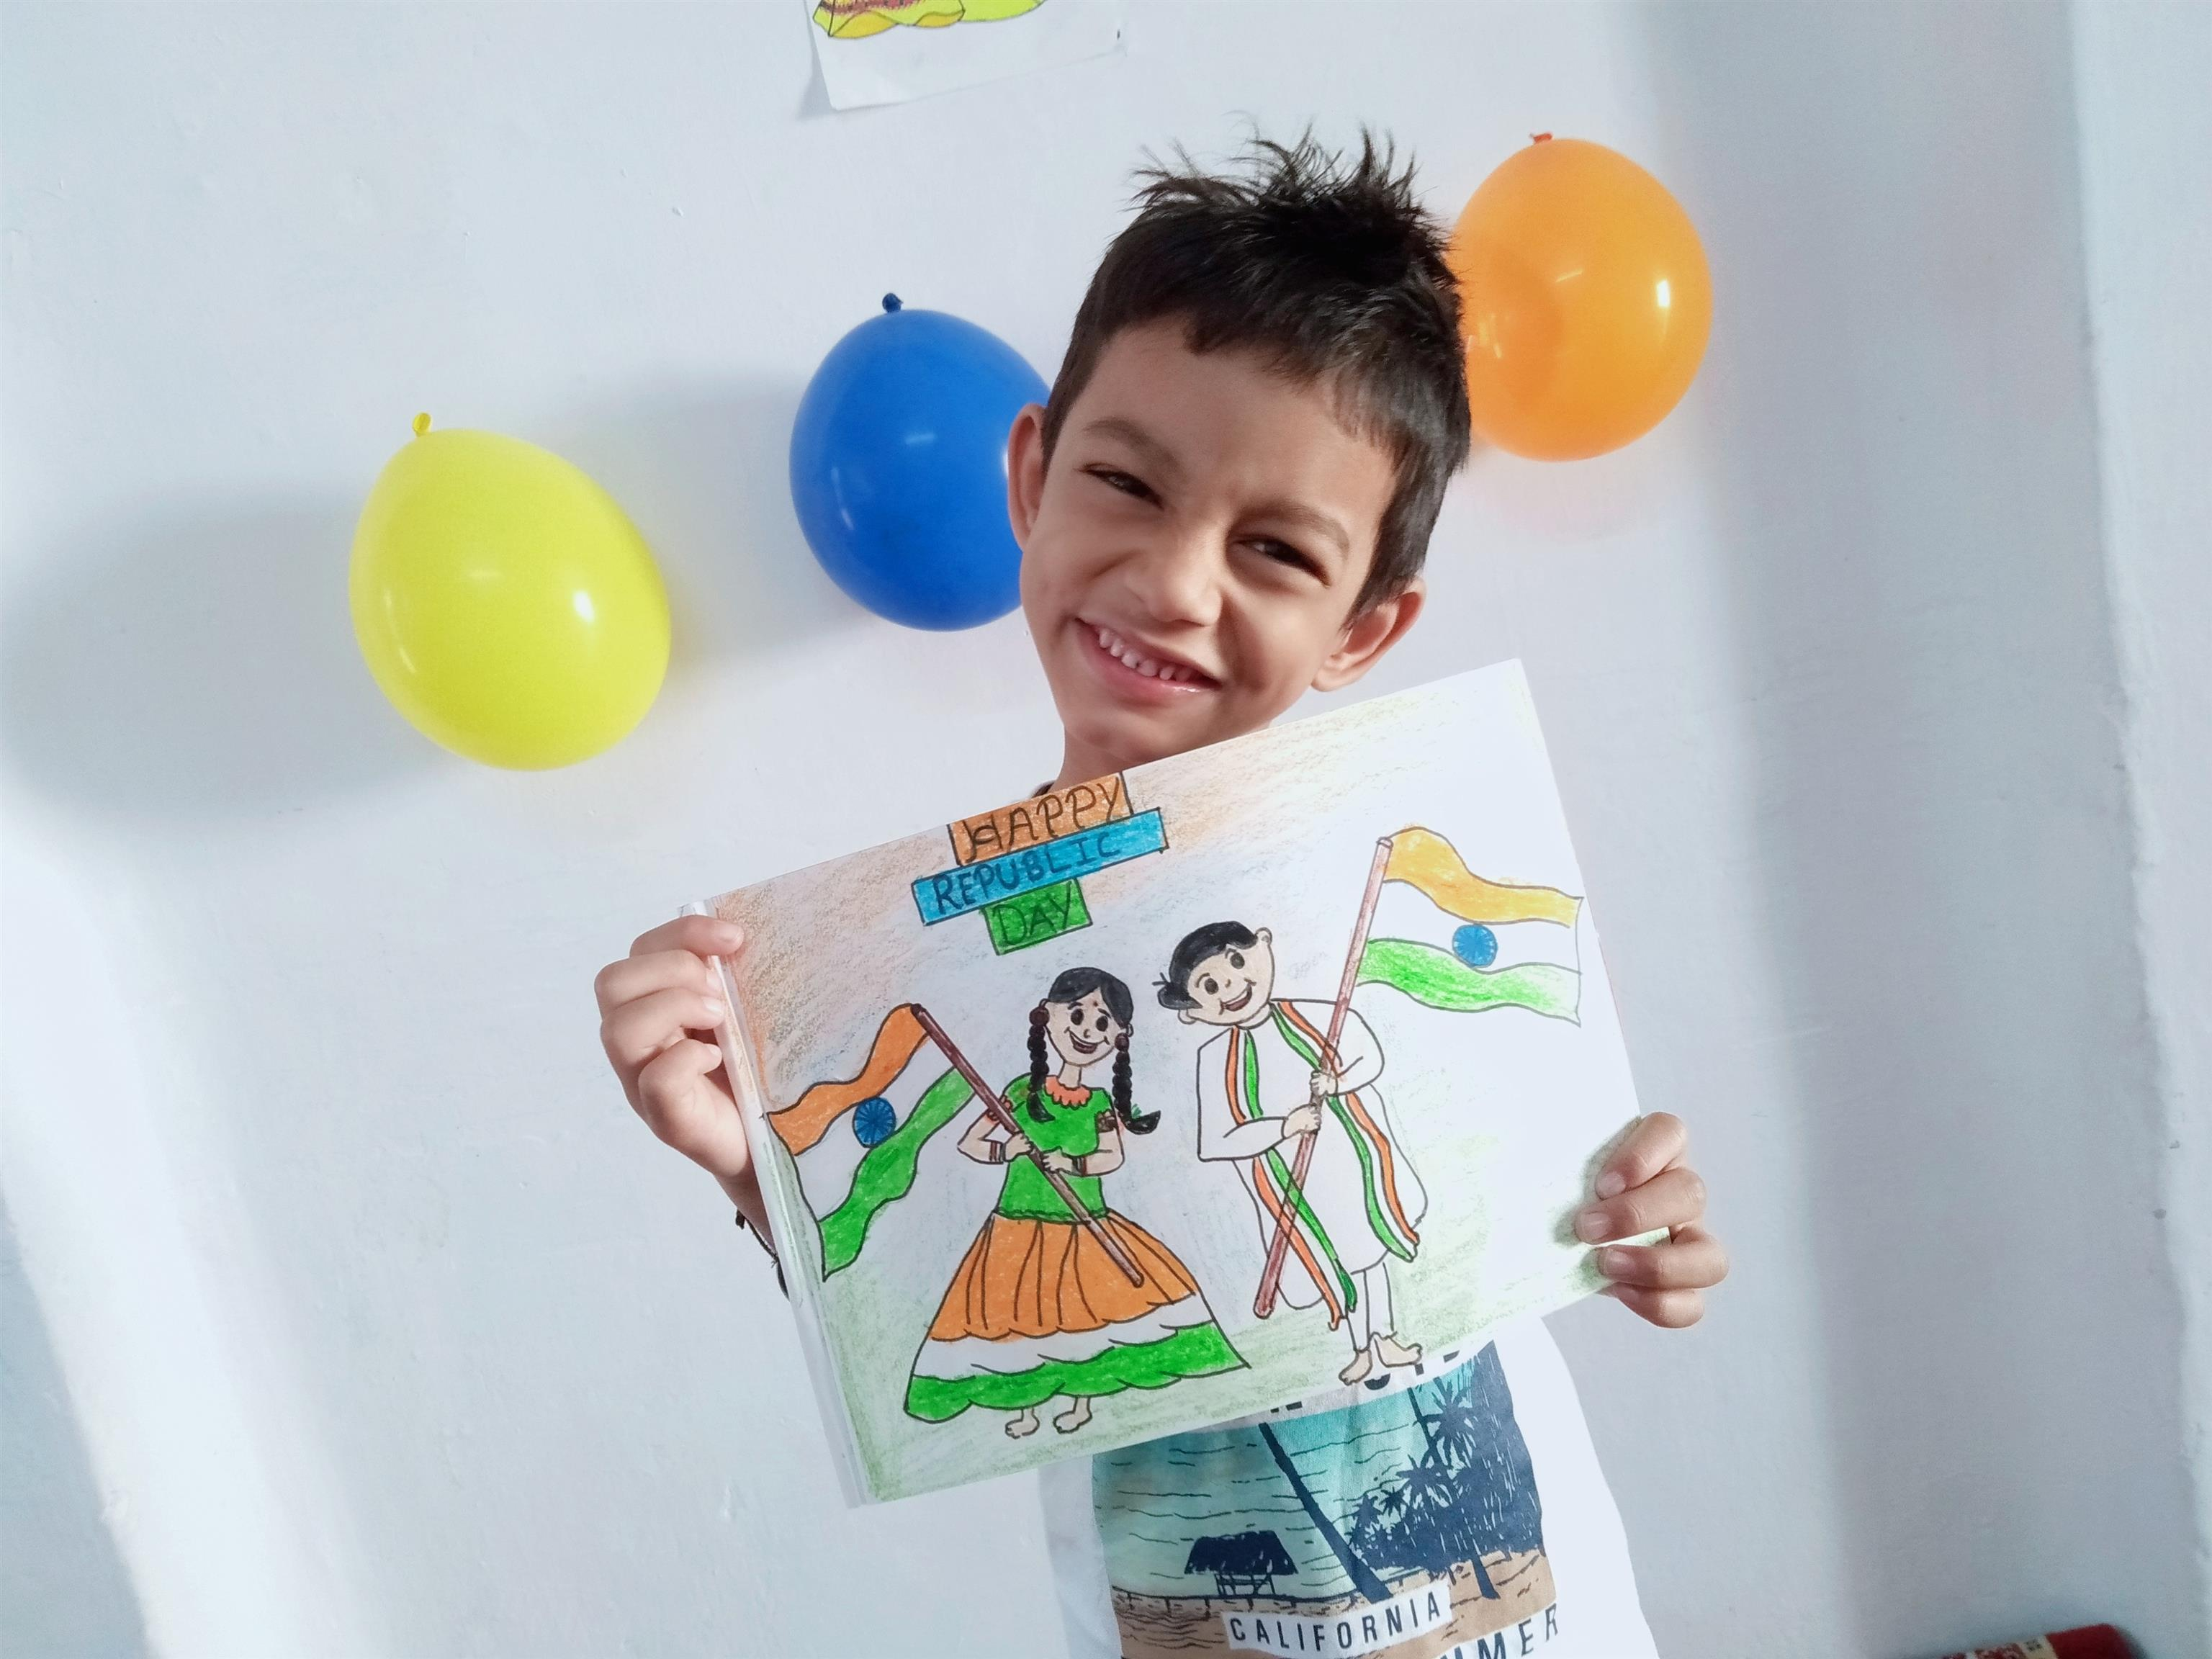 Little Moulick Singh Karki from Coimbatore wishes everyone a ' Happy Republic Day'